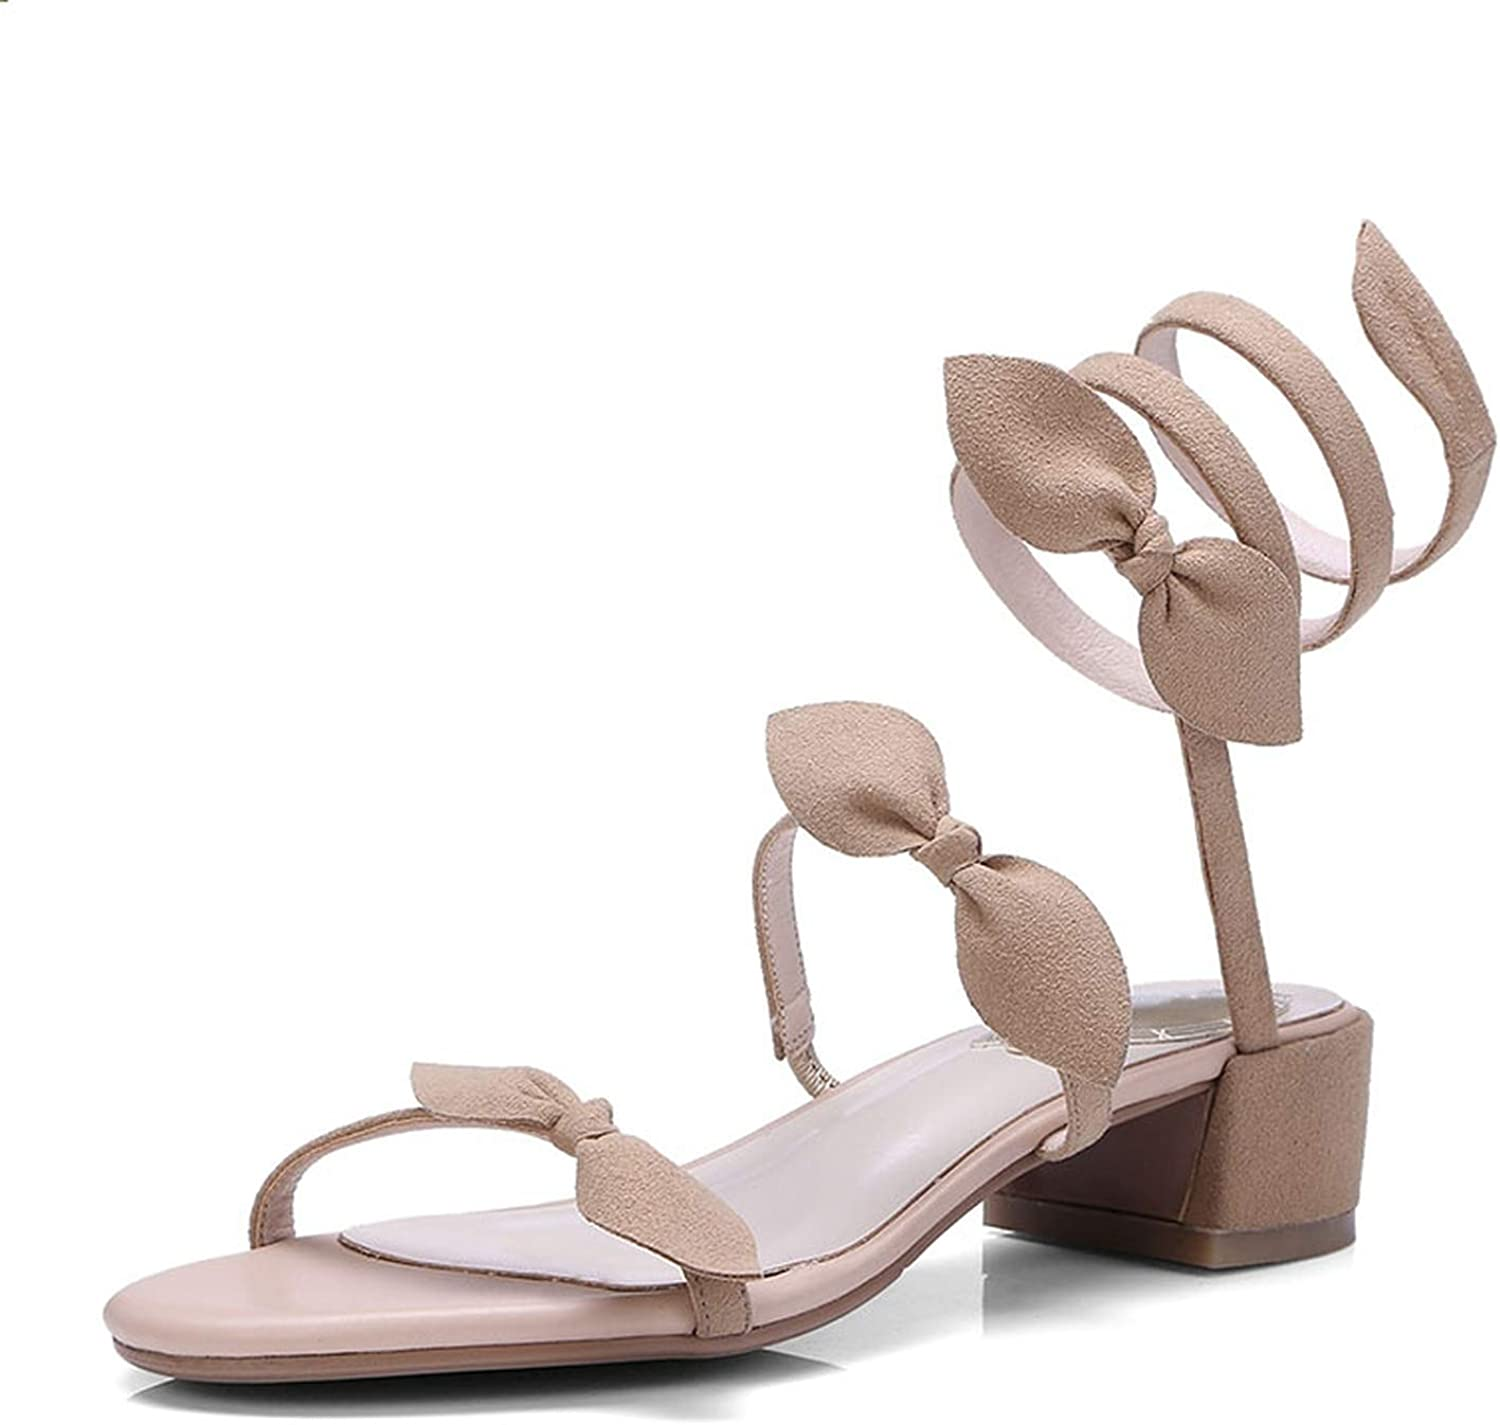 New Summer Kid Suede Sandals Sweet Butterfly Knot shoes Women Gladiator Footwear Ladies Snake Style Med Heels shoes